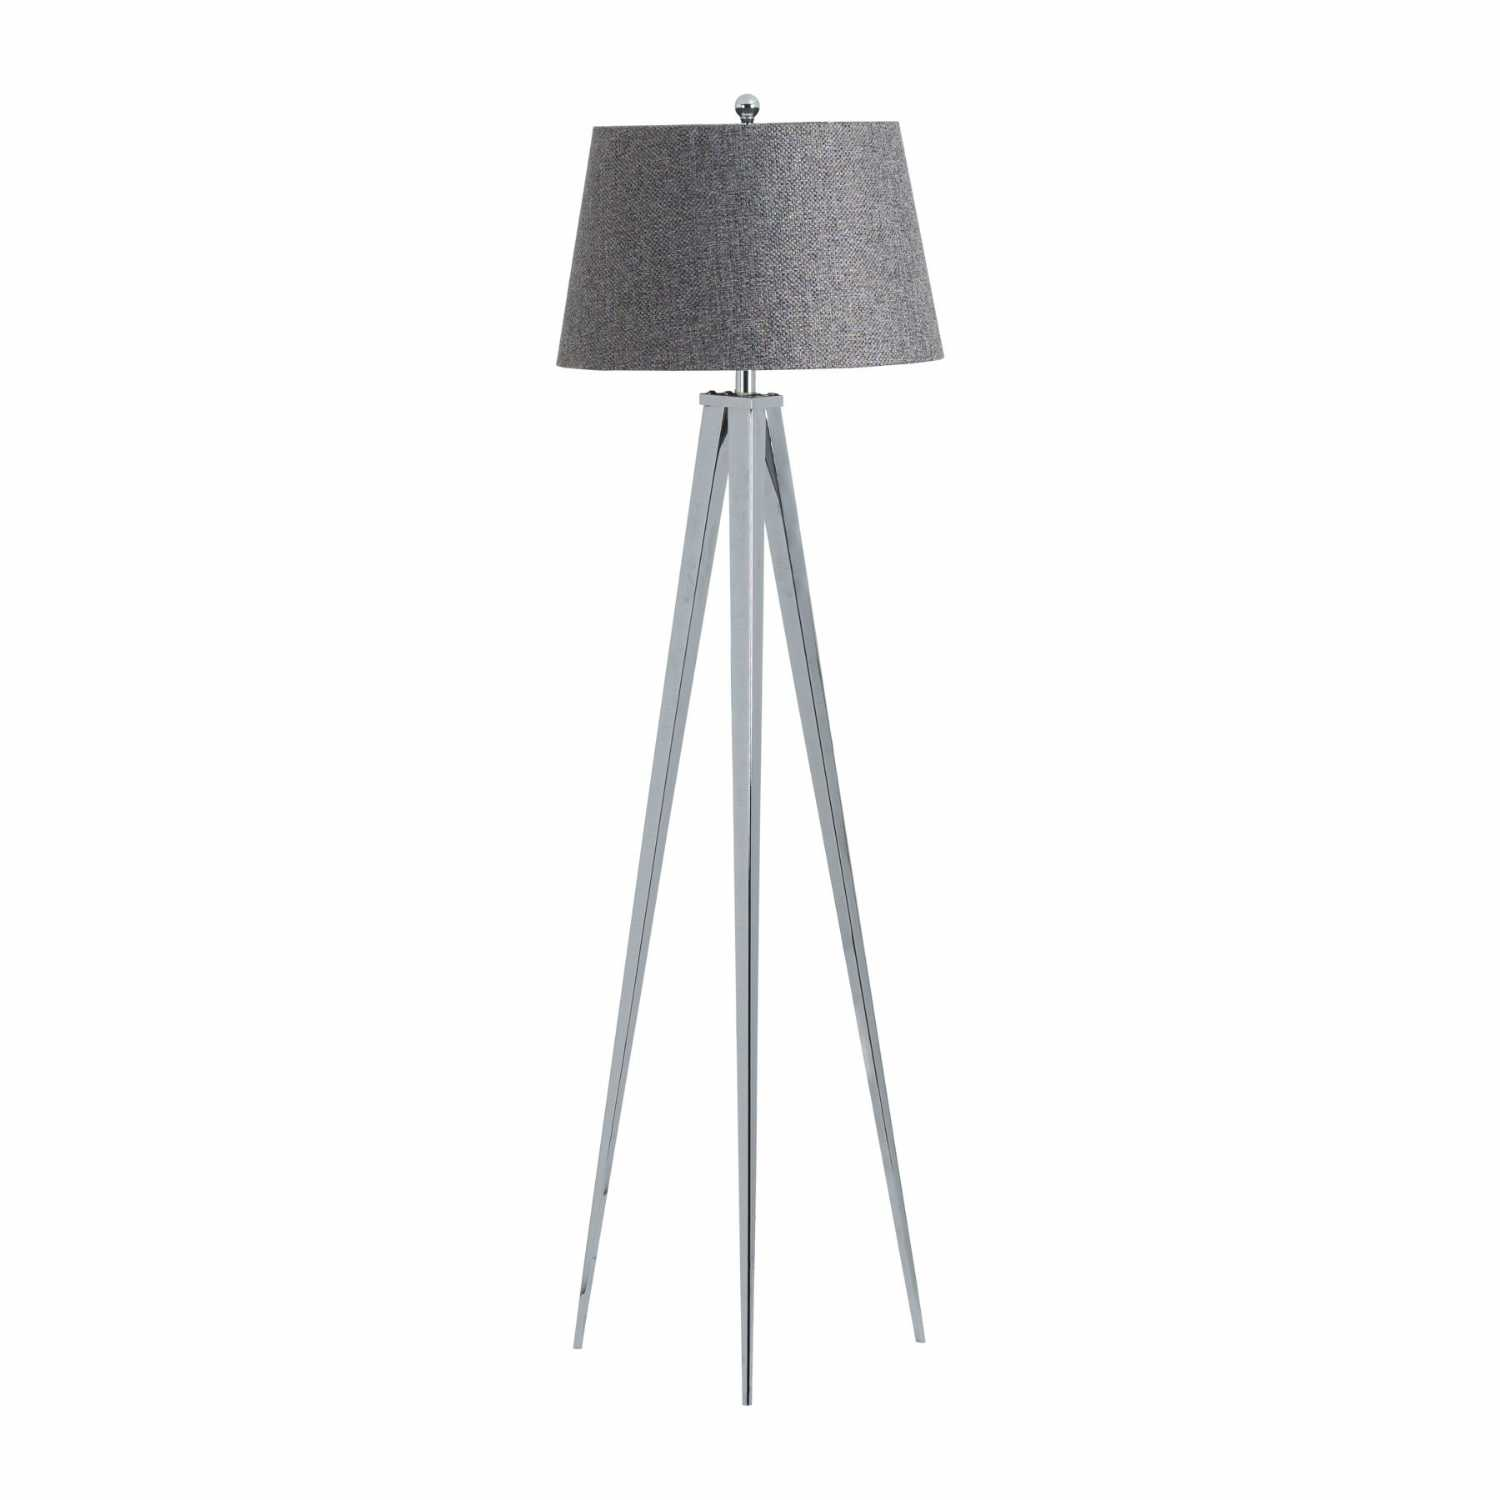 The Genoa Chrome Silver Finish Metal Tripod Floor Lamp